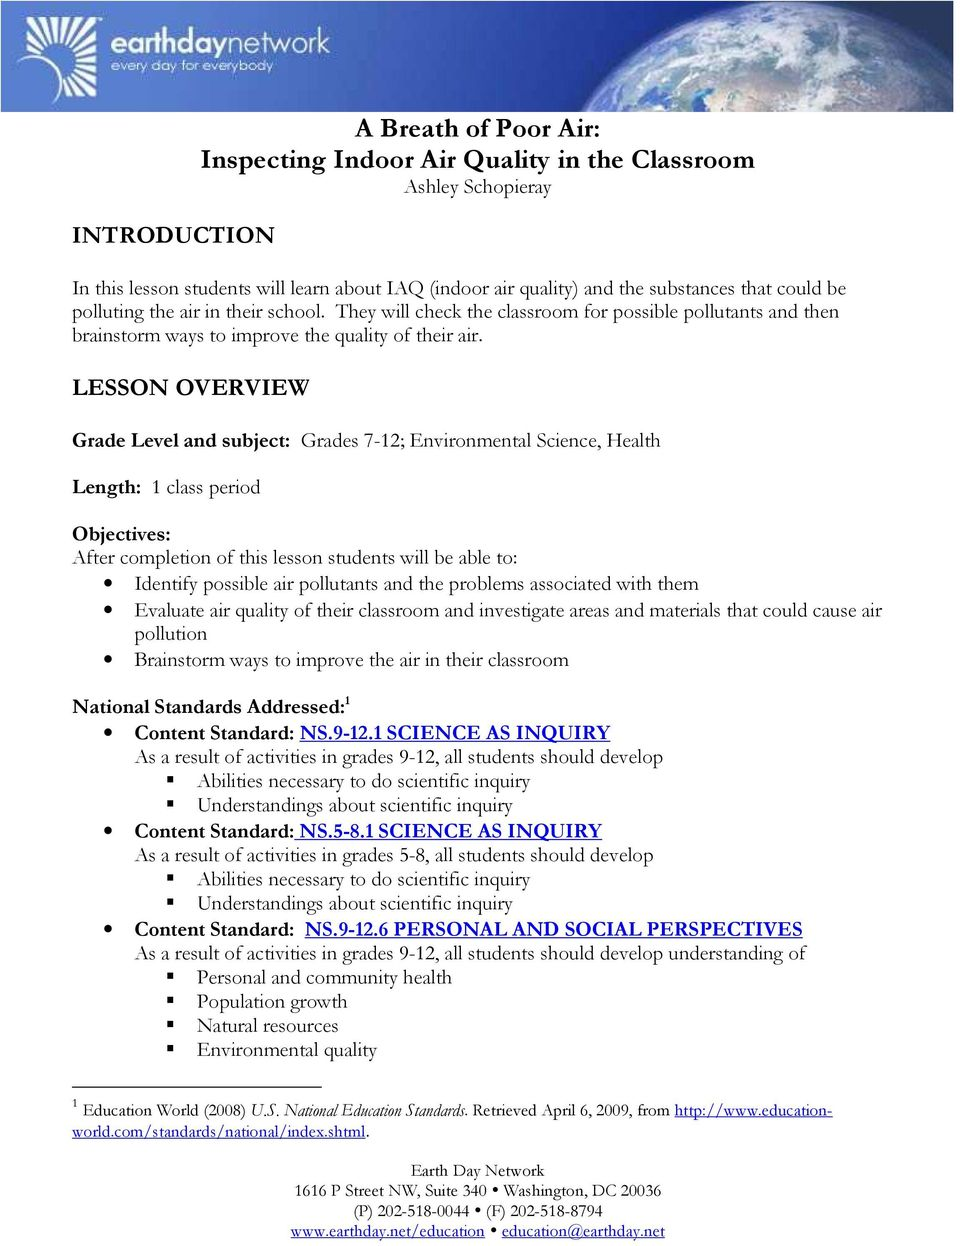 LESSON OVERVIEW Grade Level and subject: Grades 7-12; Environmental Science, Health Length: 1 class period Objectives: After completion of this lesson students will be able to: Identify possible air